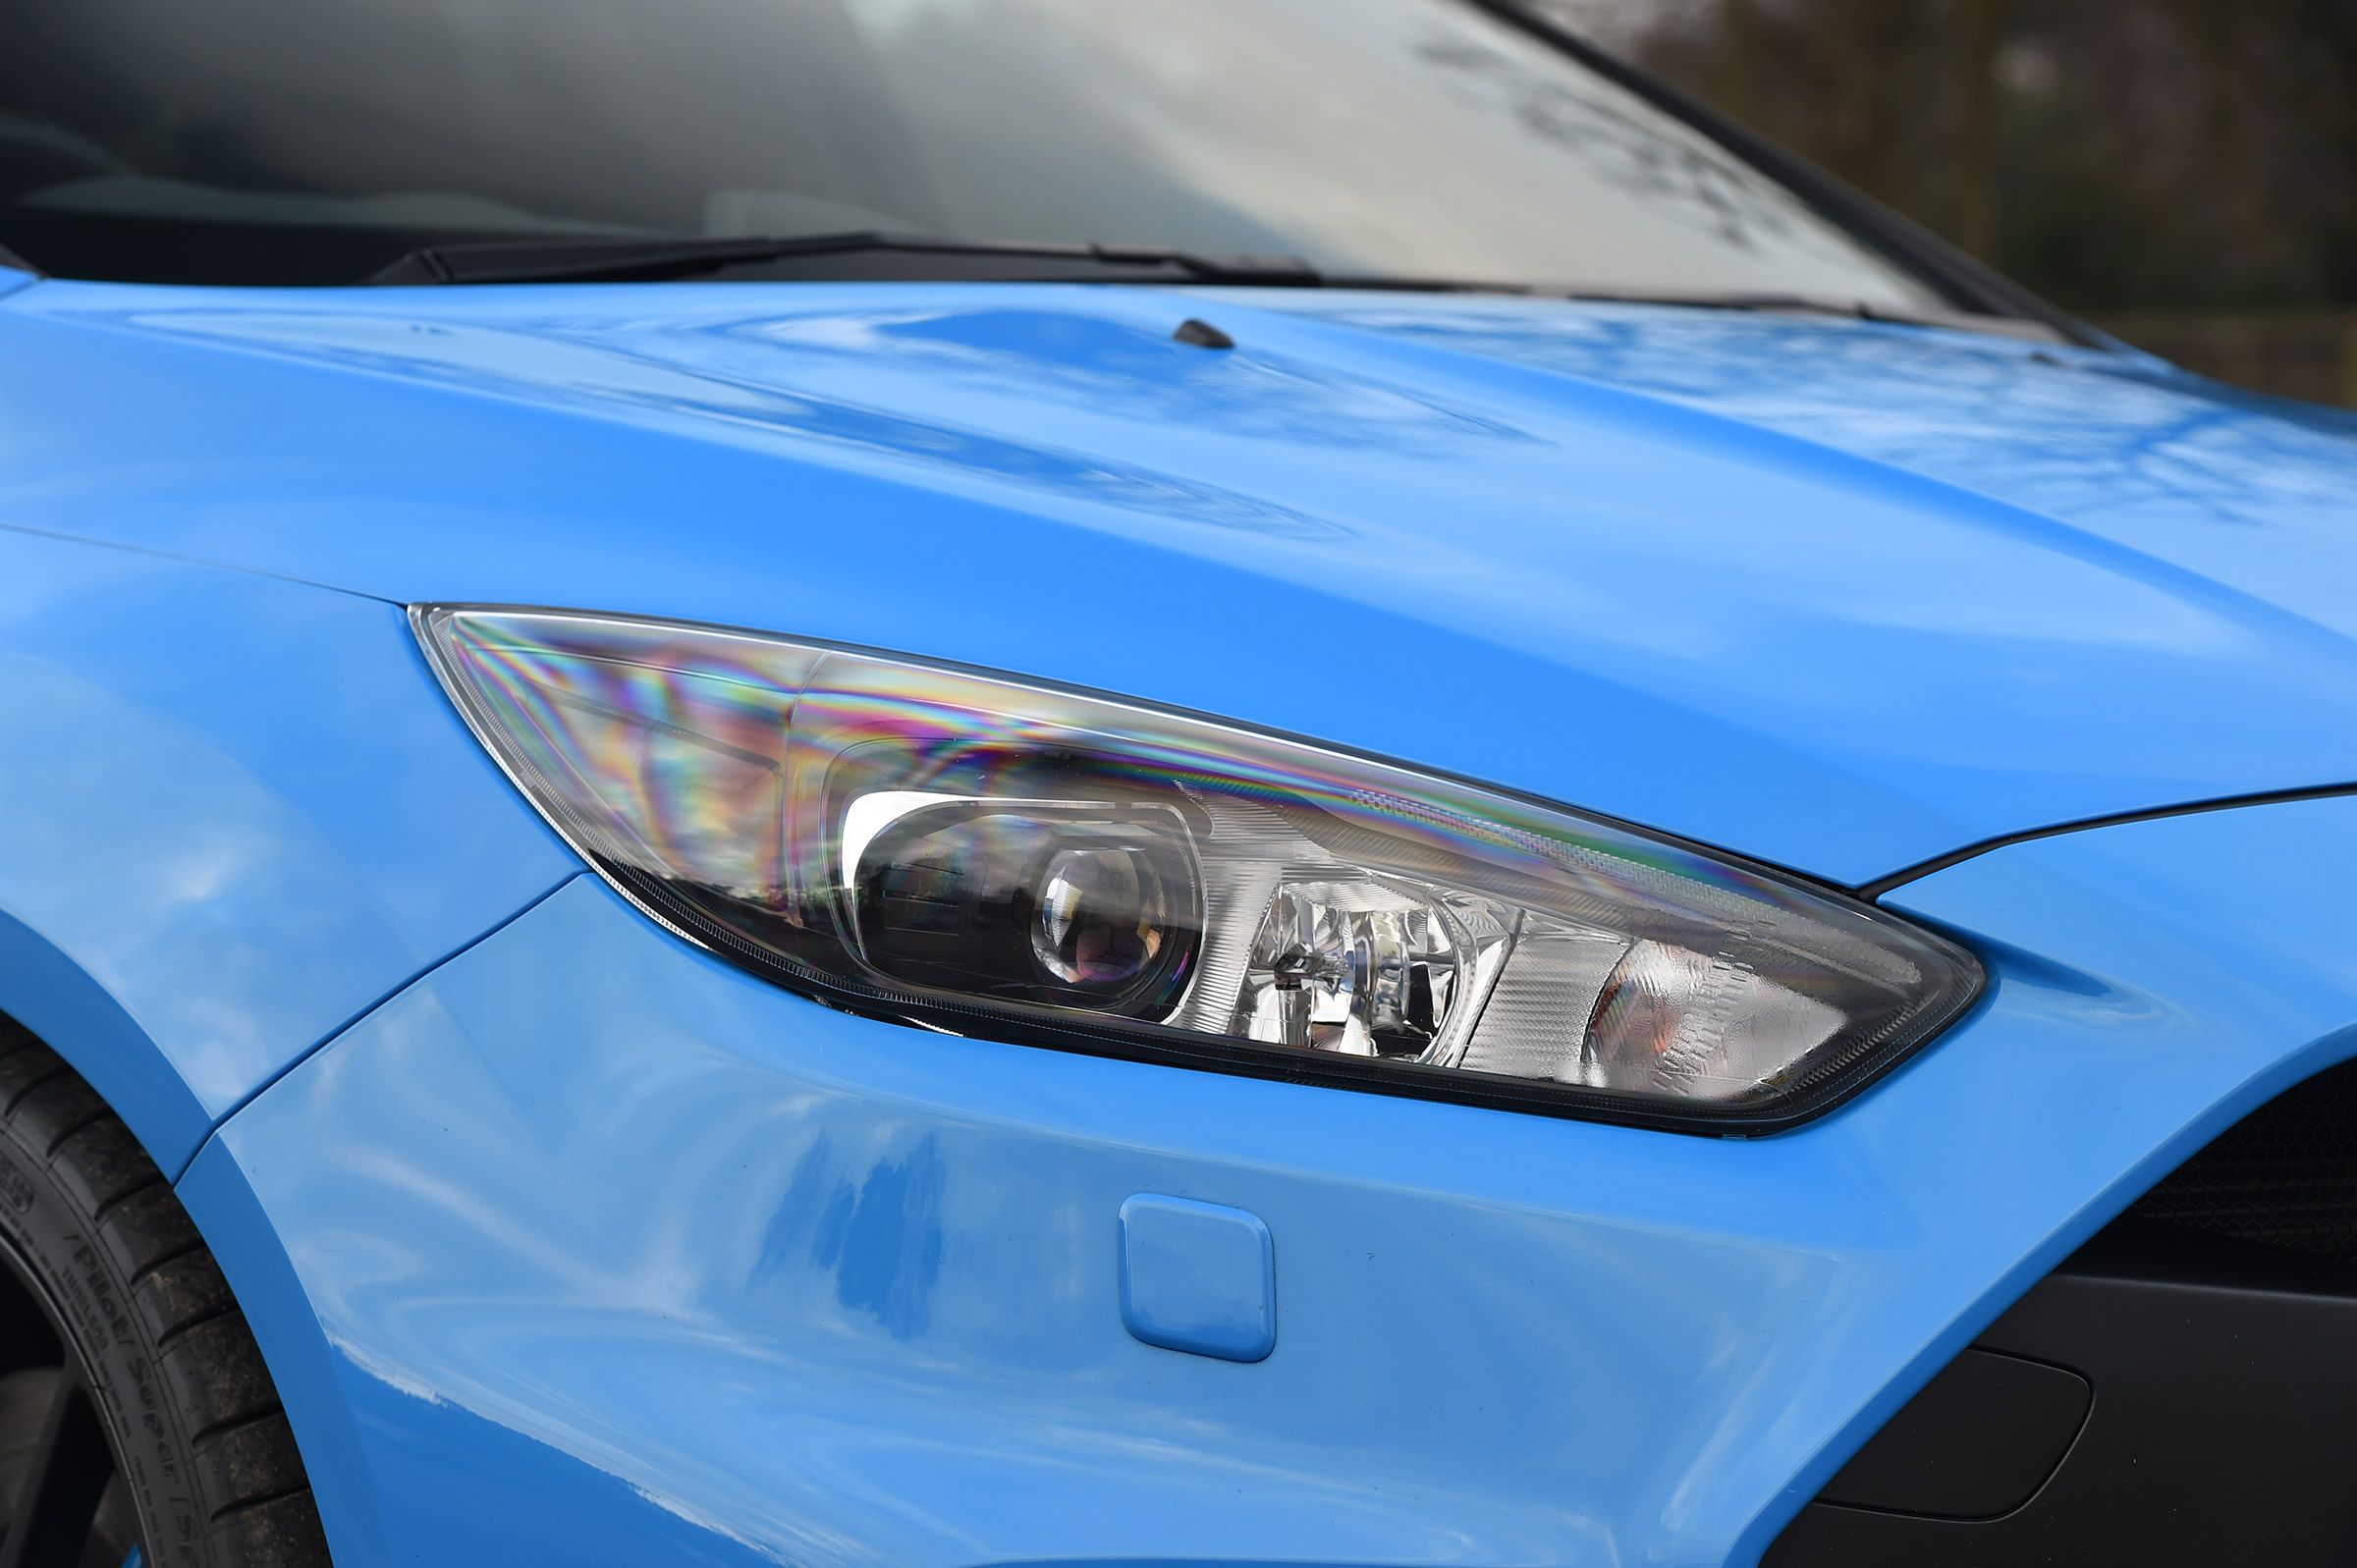 2017 Ford Focus RS Exterior View Headlight (Photo 5 of 23)